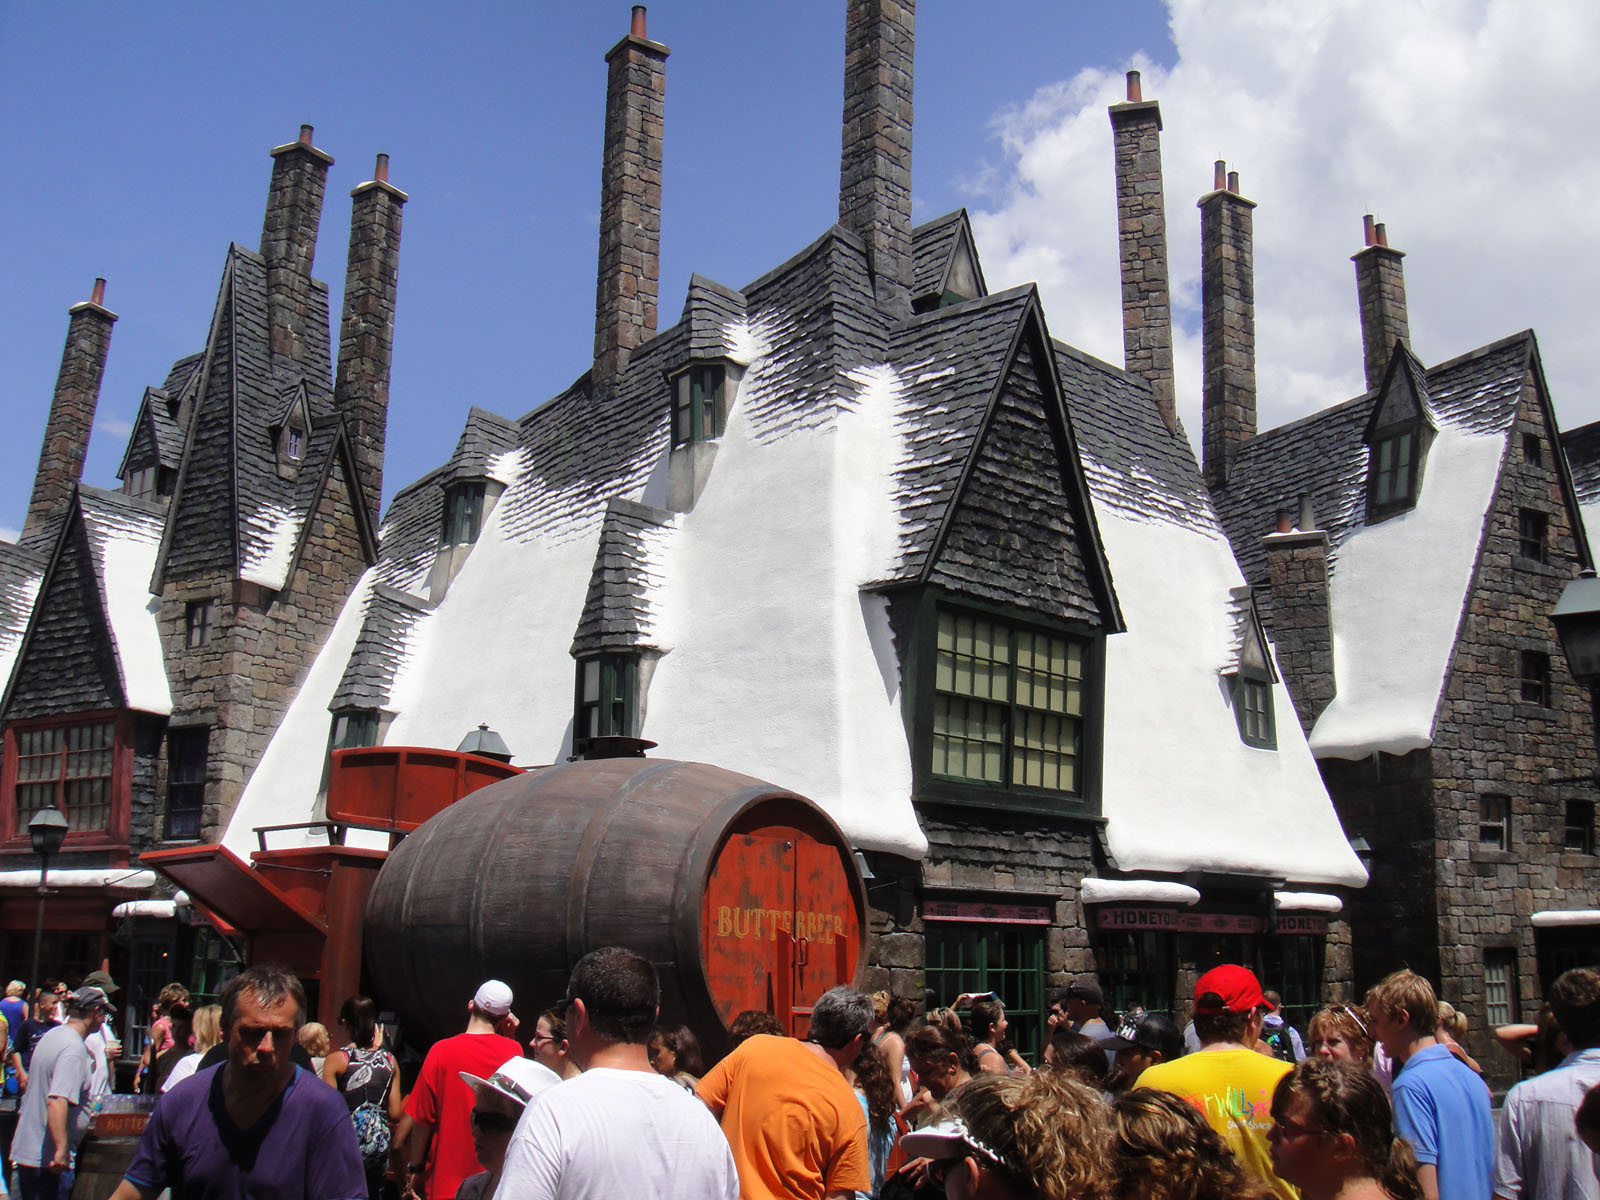 Hogsmeade at the Wizarding World of Harry Potter